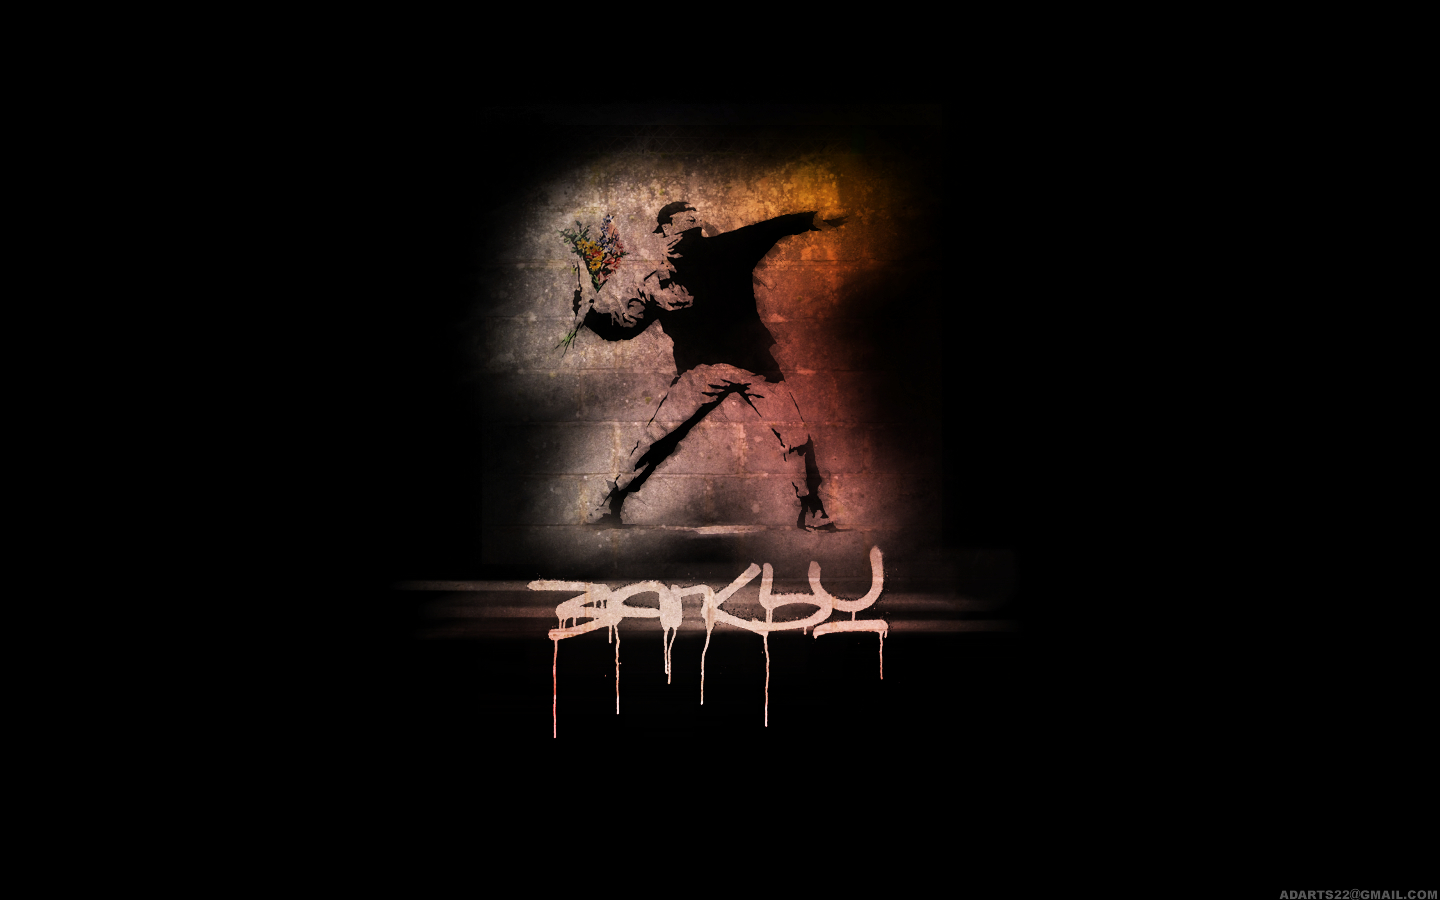 graffiti urban spray banksy HD Wallpaper